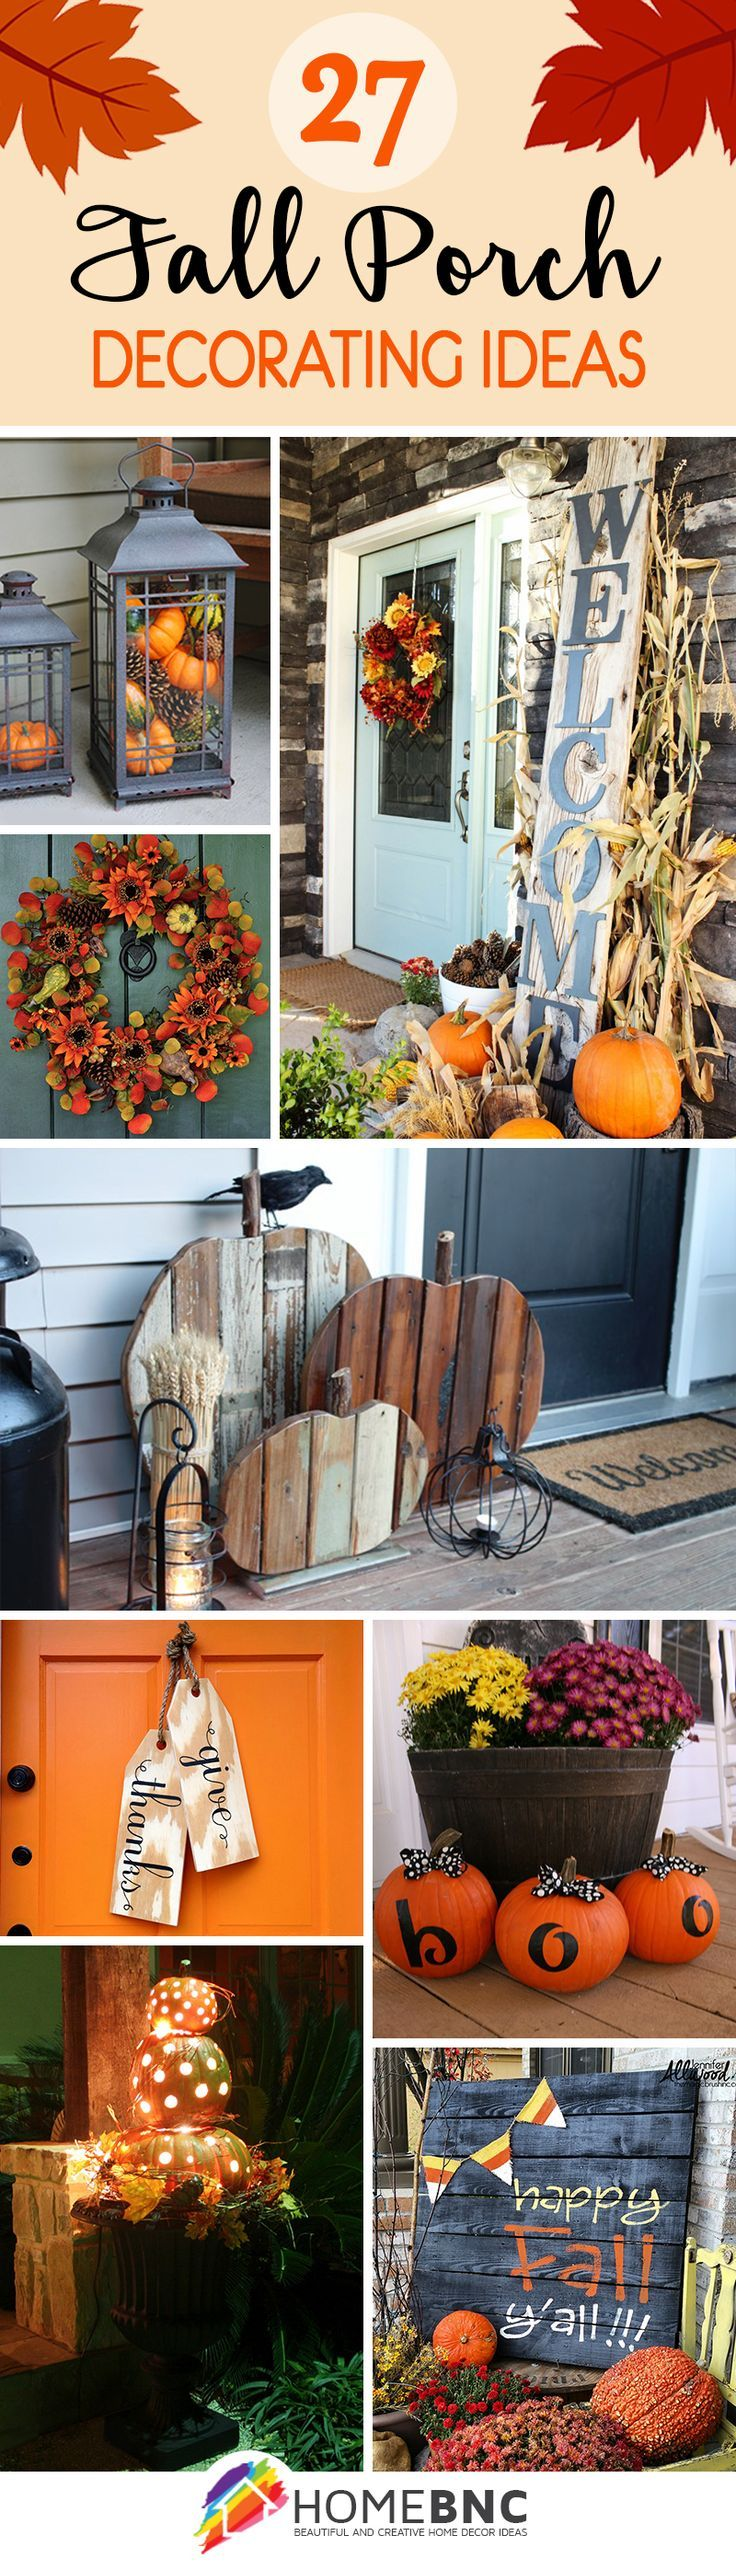 Fall porch decorating ideas pictures - 27 Creative Fall Porch Decorating Ideas To Make Yours Unforgettable